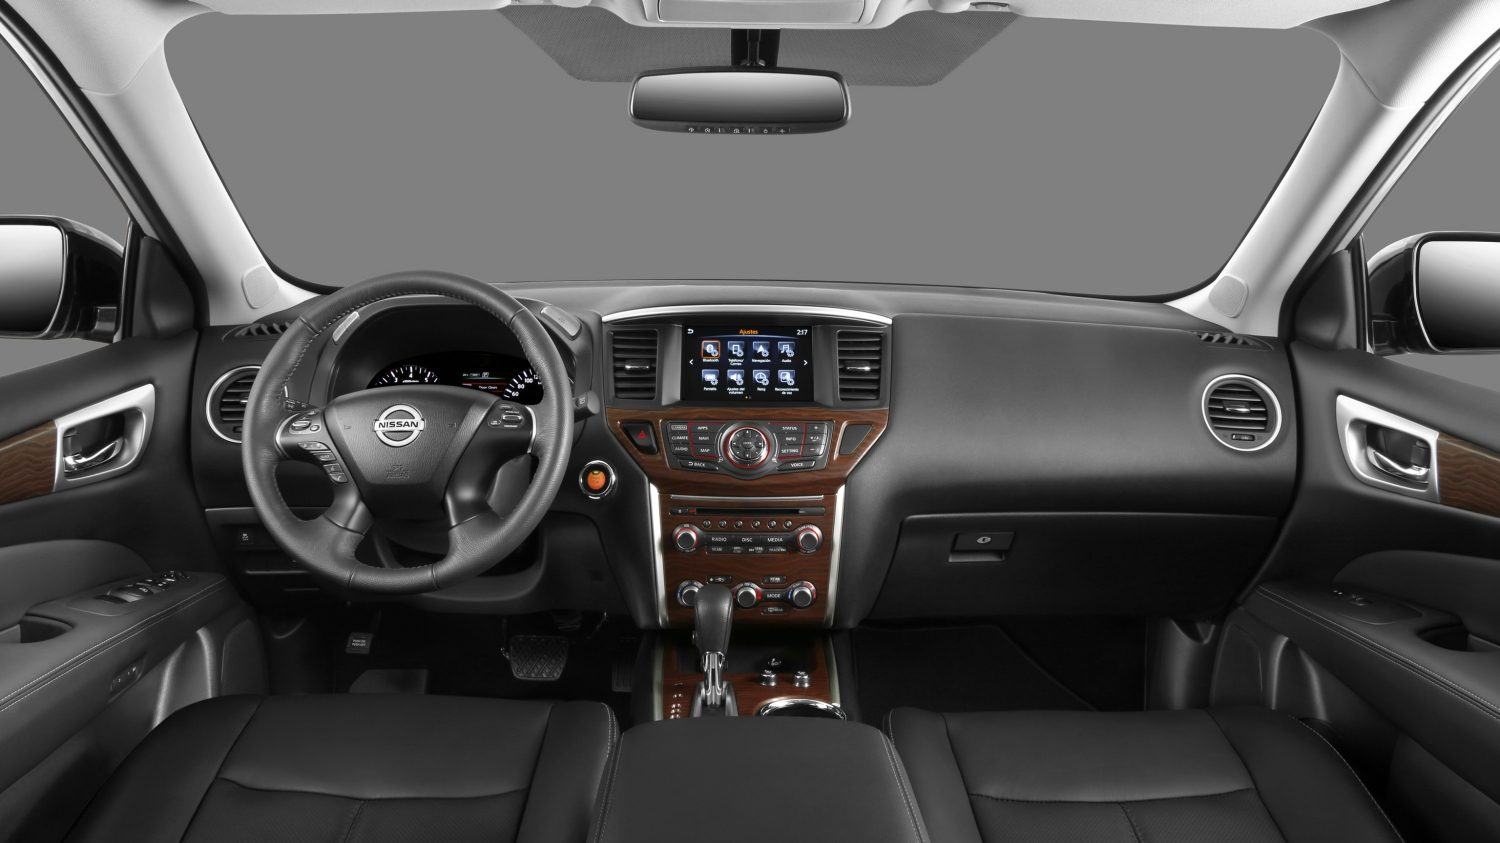 Nissan Pathfinder NissanConnect display with apps